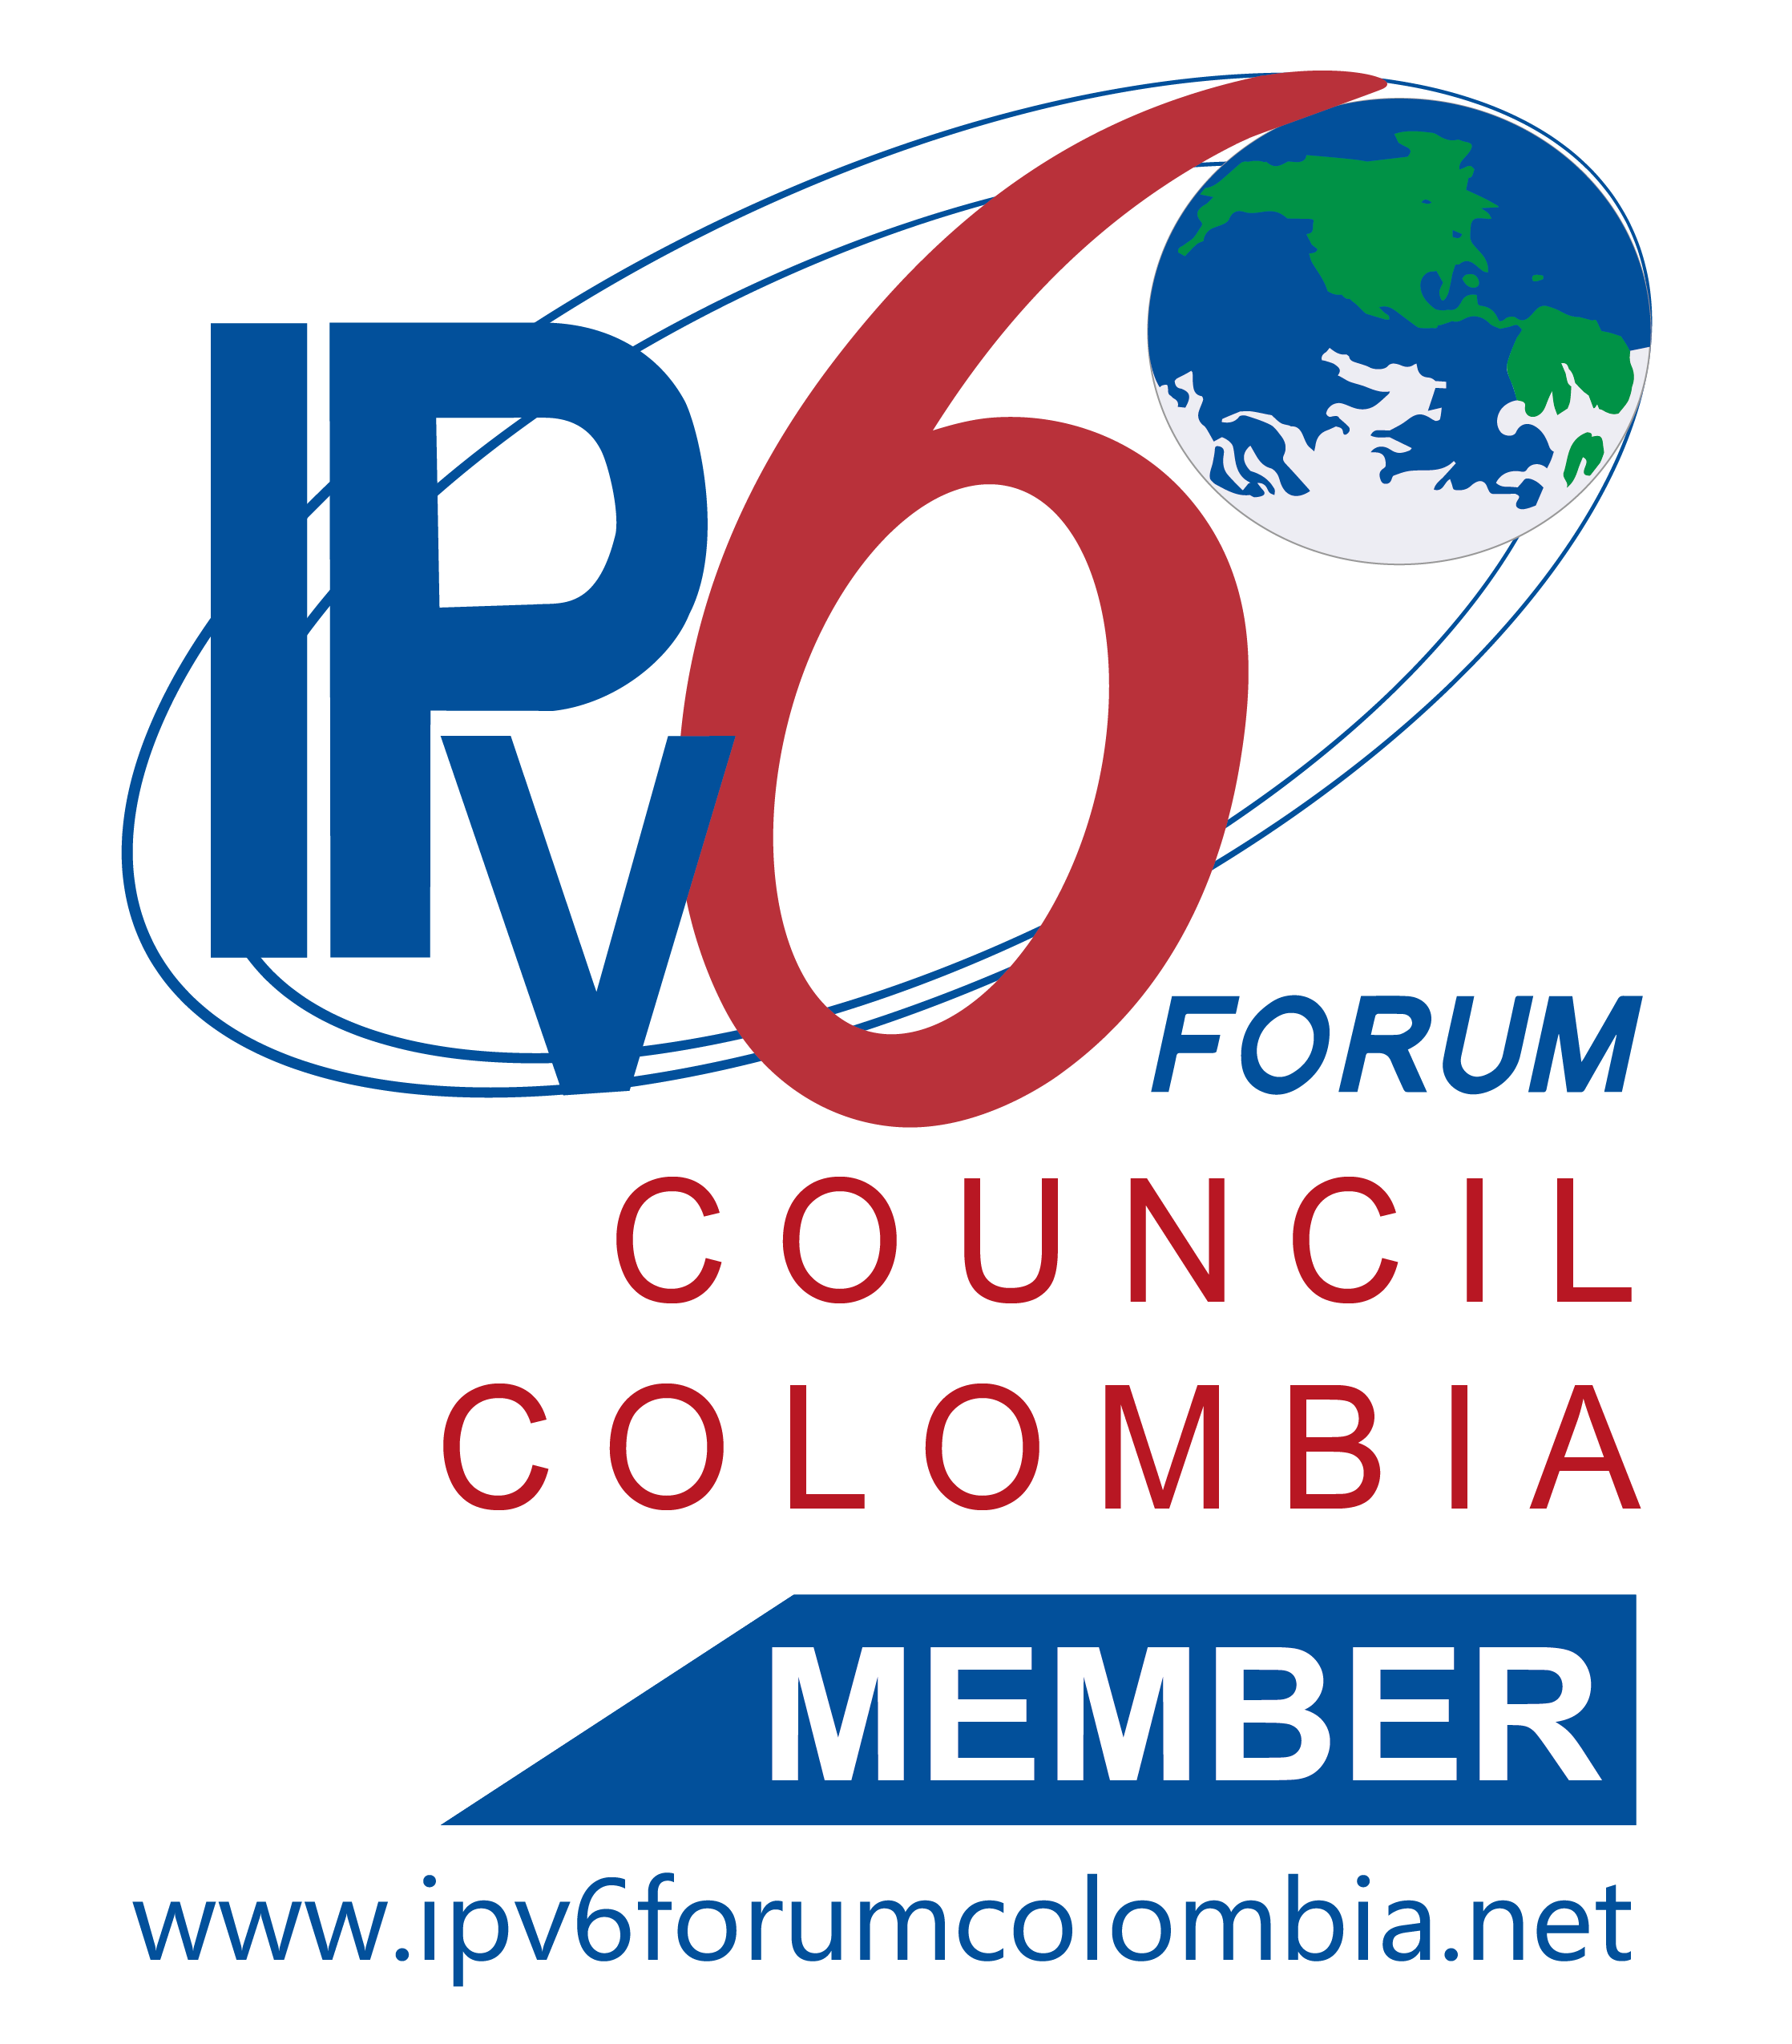 IPv6 Council Colombia